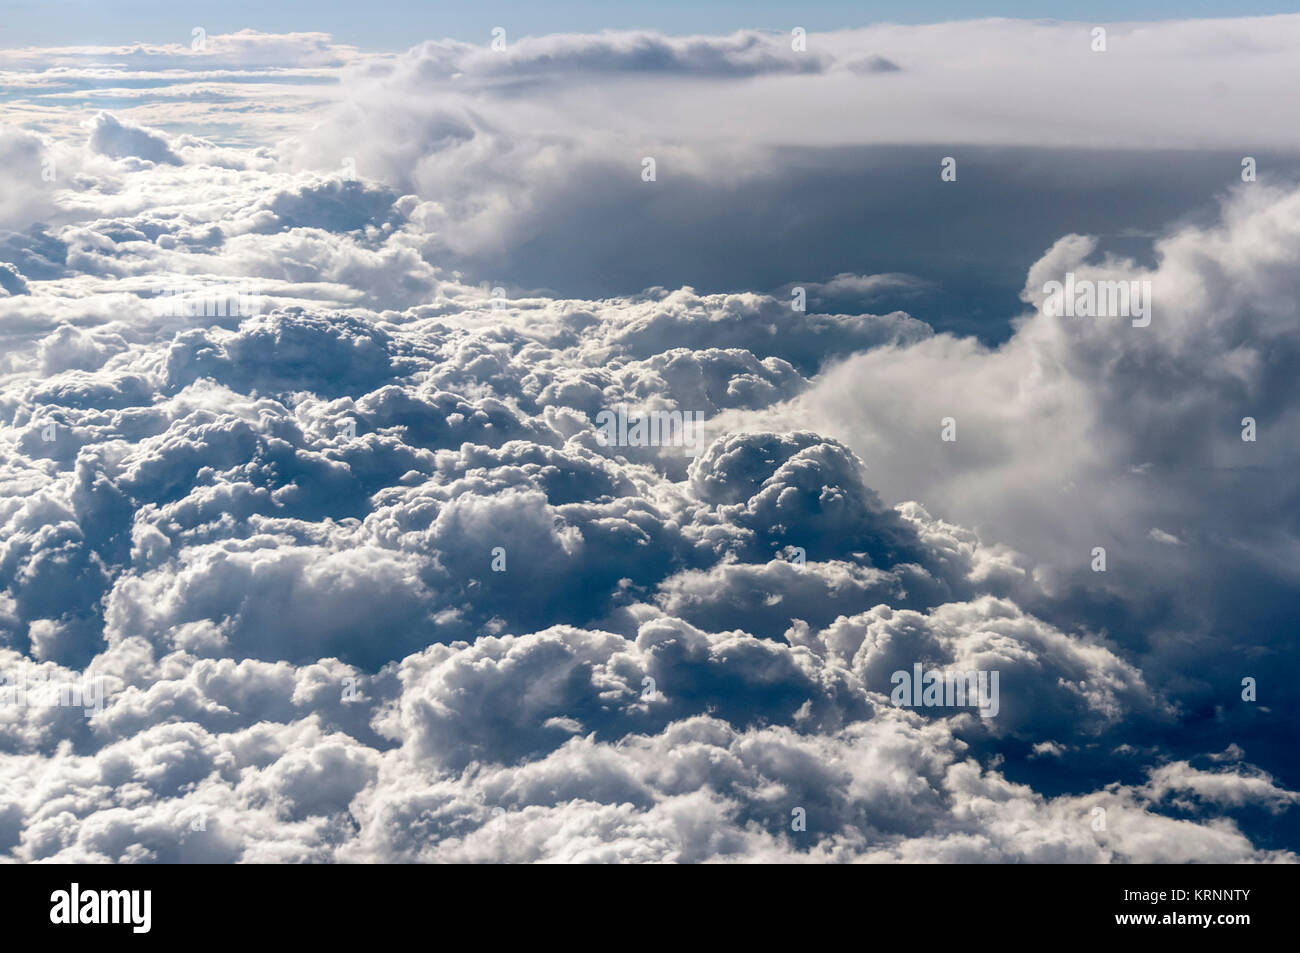 Aerial View of a wide  bank of fluffy white clouds Clouds - Stock Image